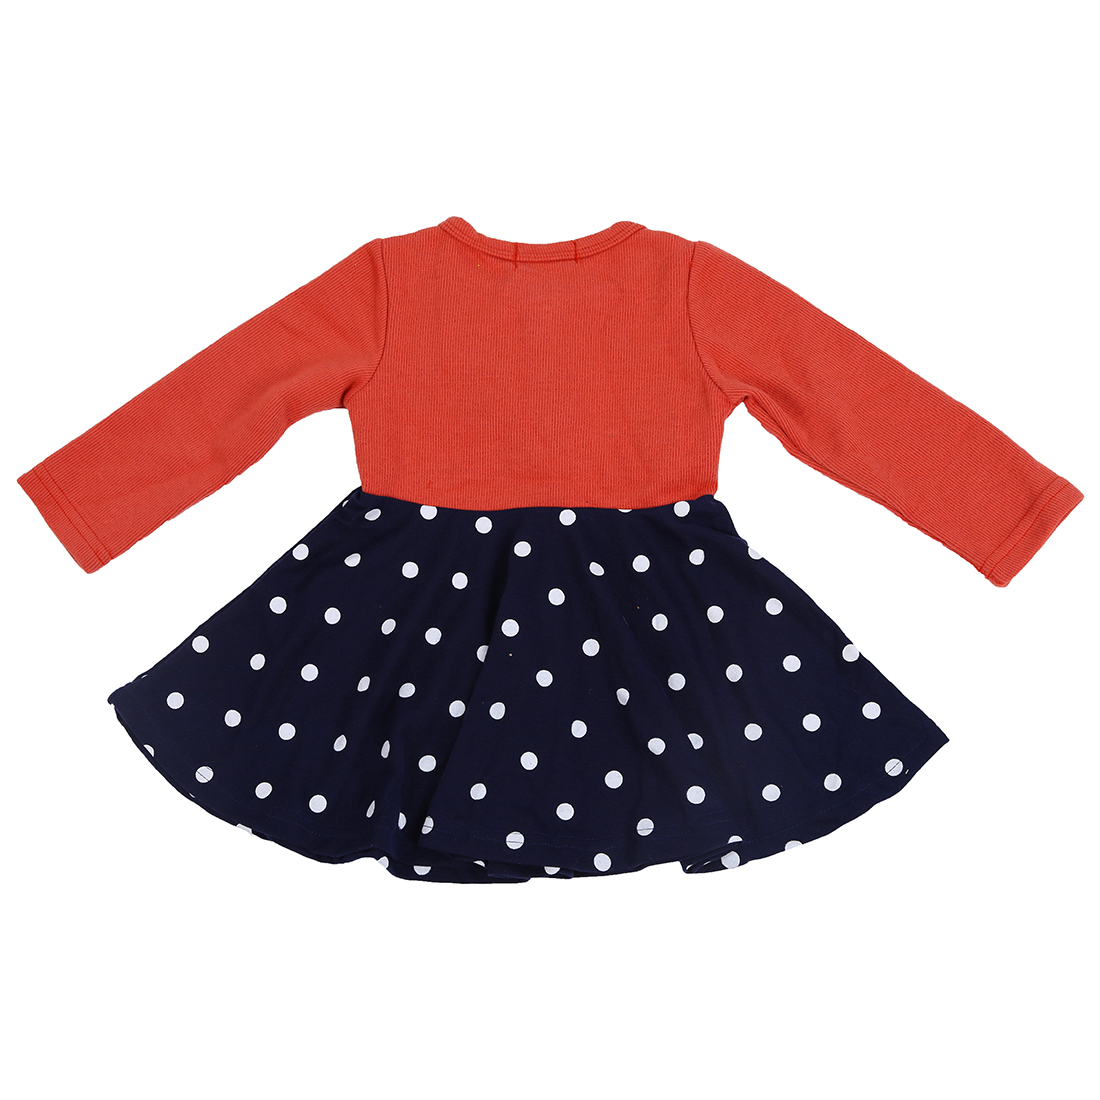 ABWE Best Sale Baby Girl Long-Sleeved Dress Children Flower Dot Princess Dress Orange XL image